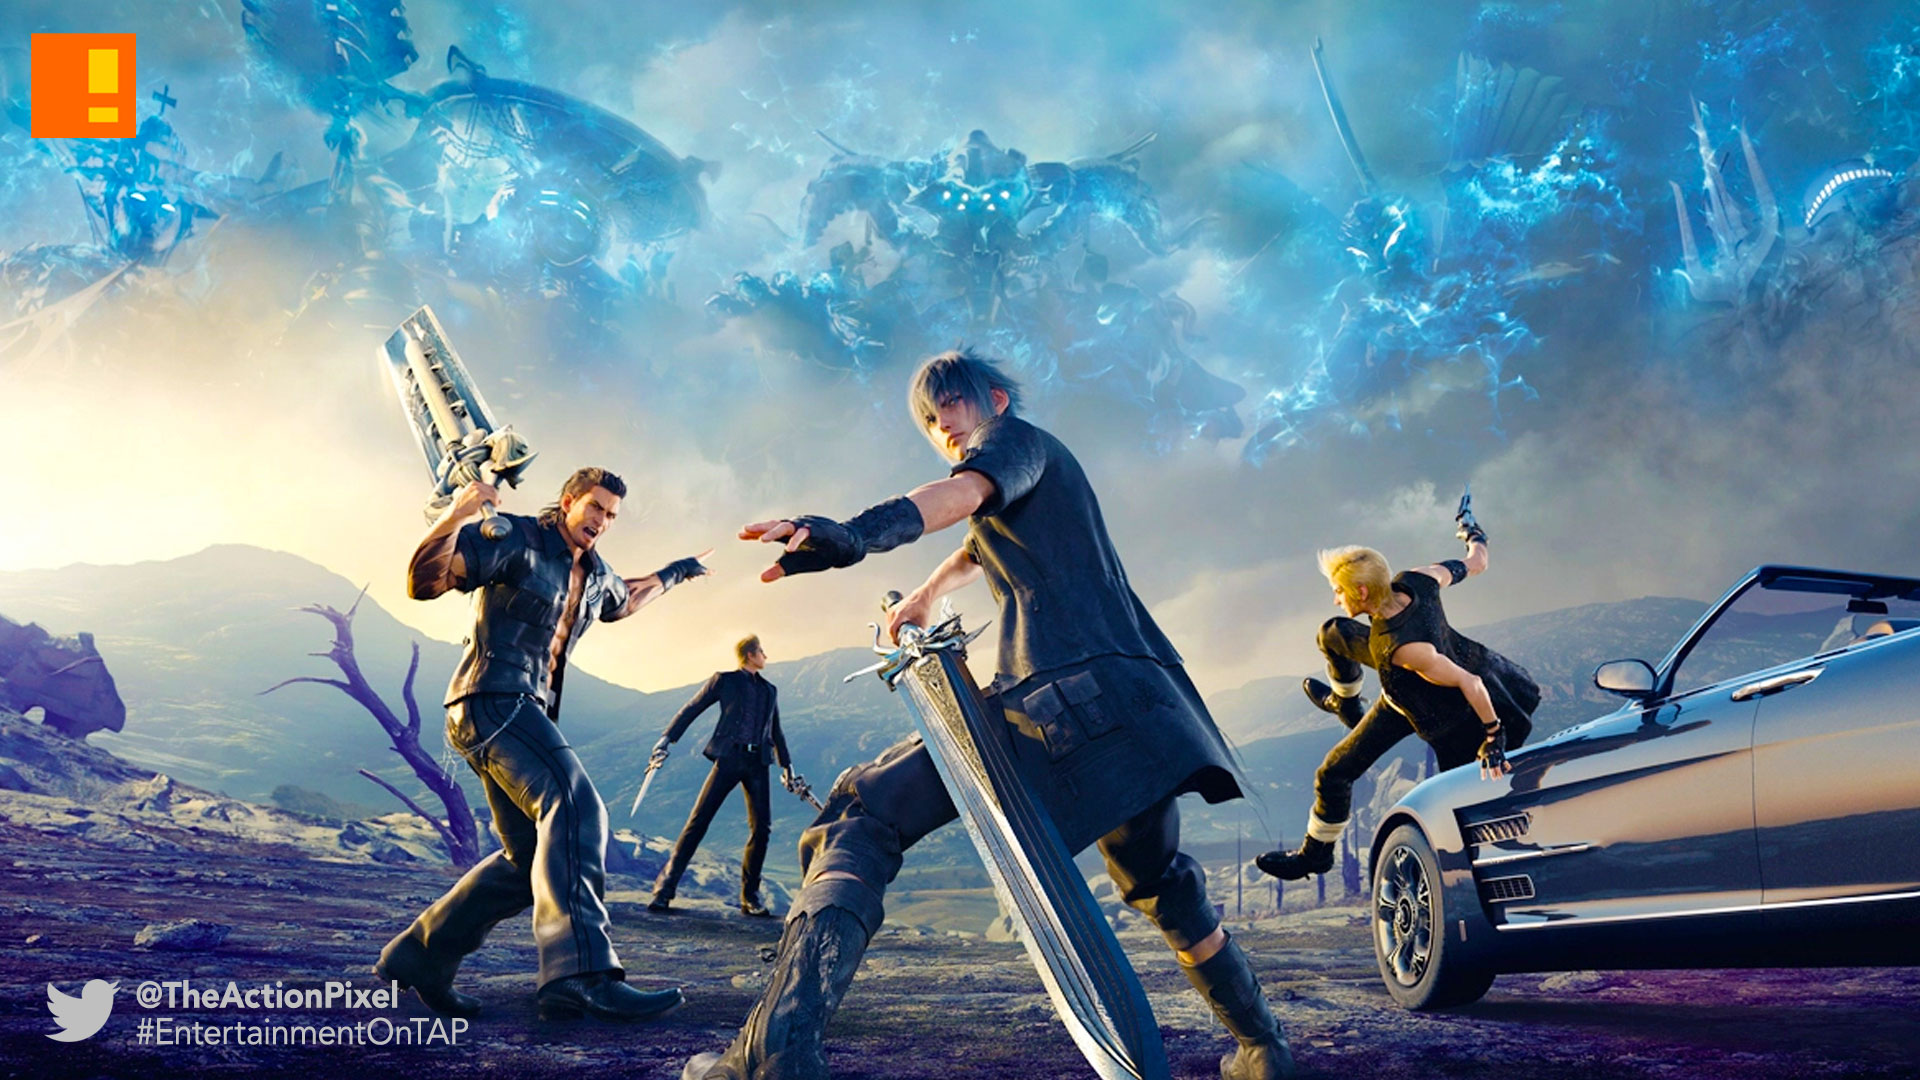 final fantasy xv, final fantasy, square enix, the action pixel, entertainment on tap, ride along,